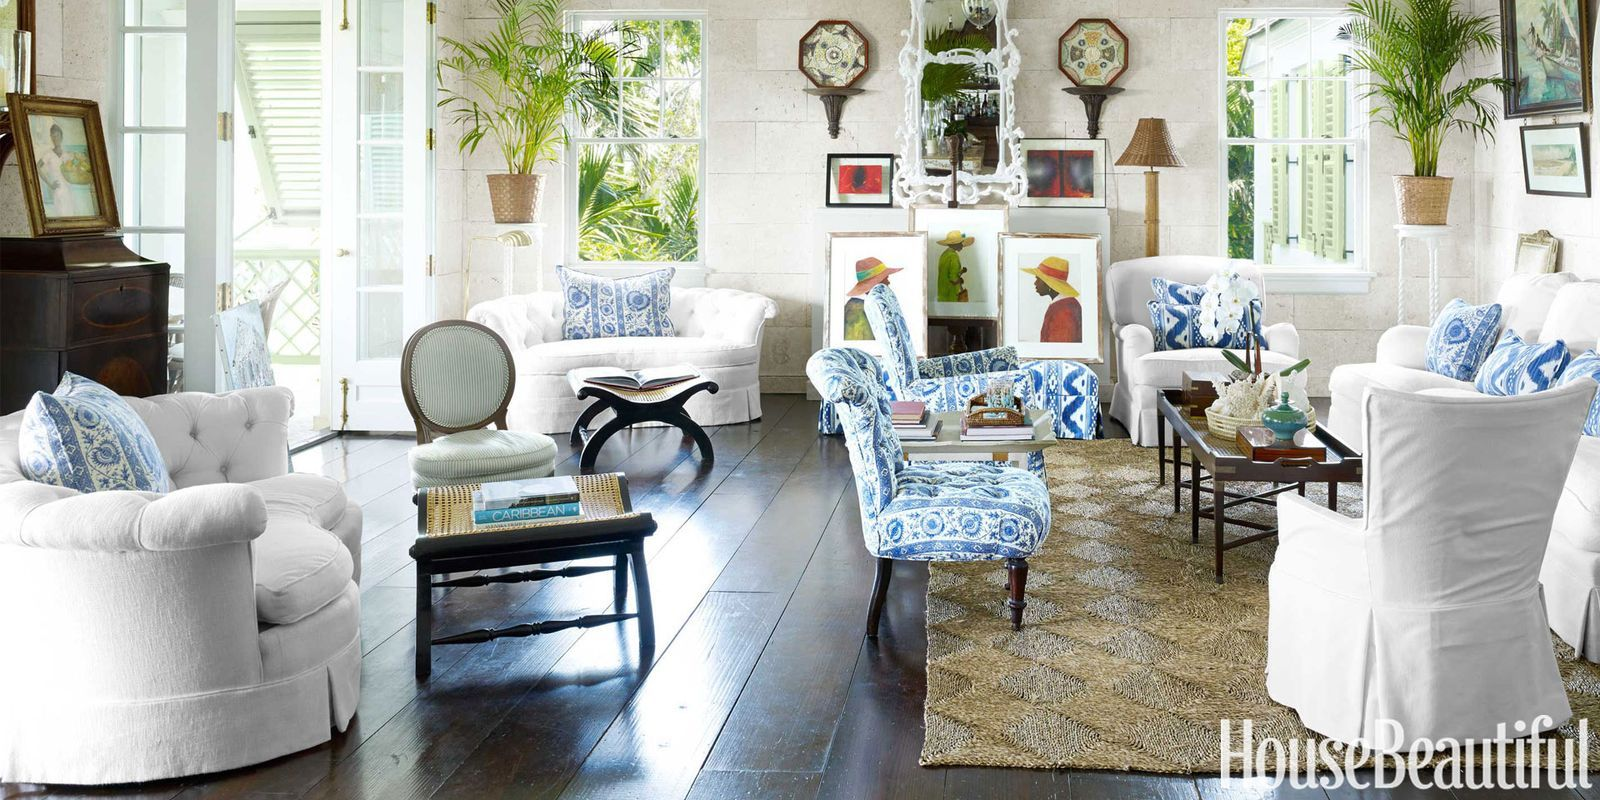 Inside a Bright and Airy Bahamas House